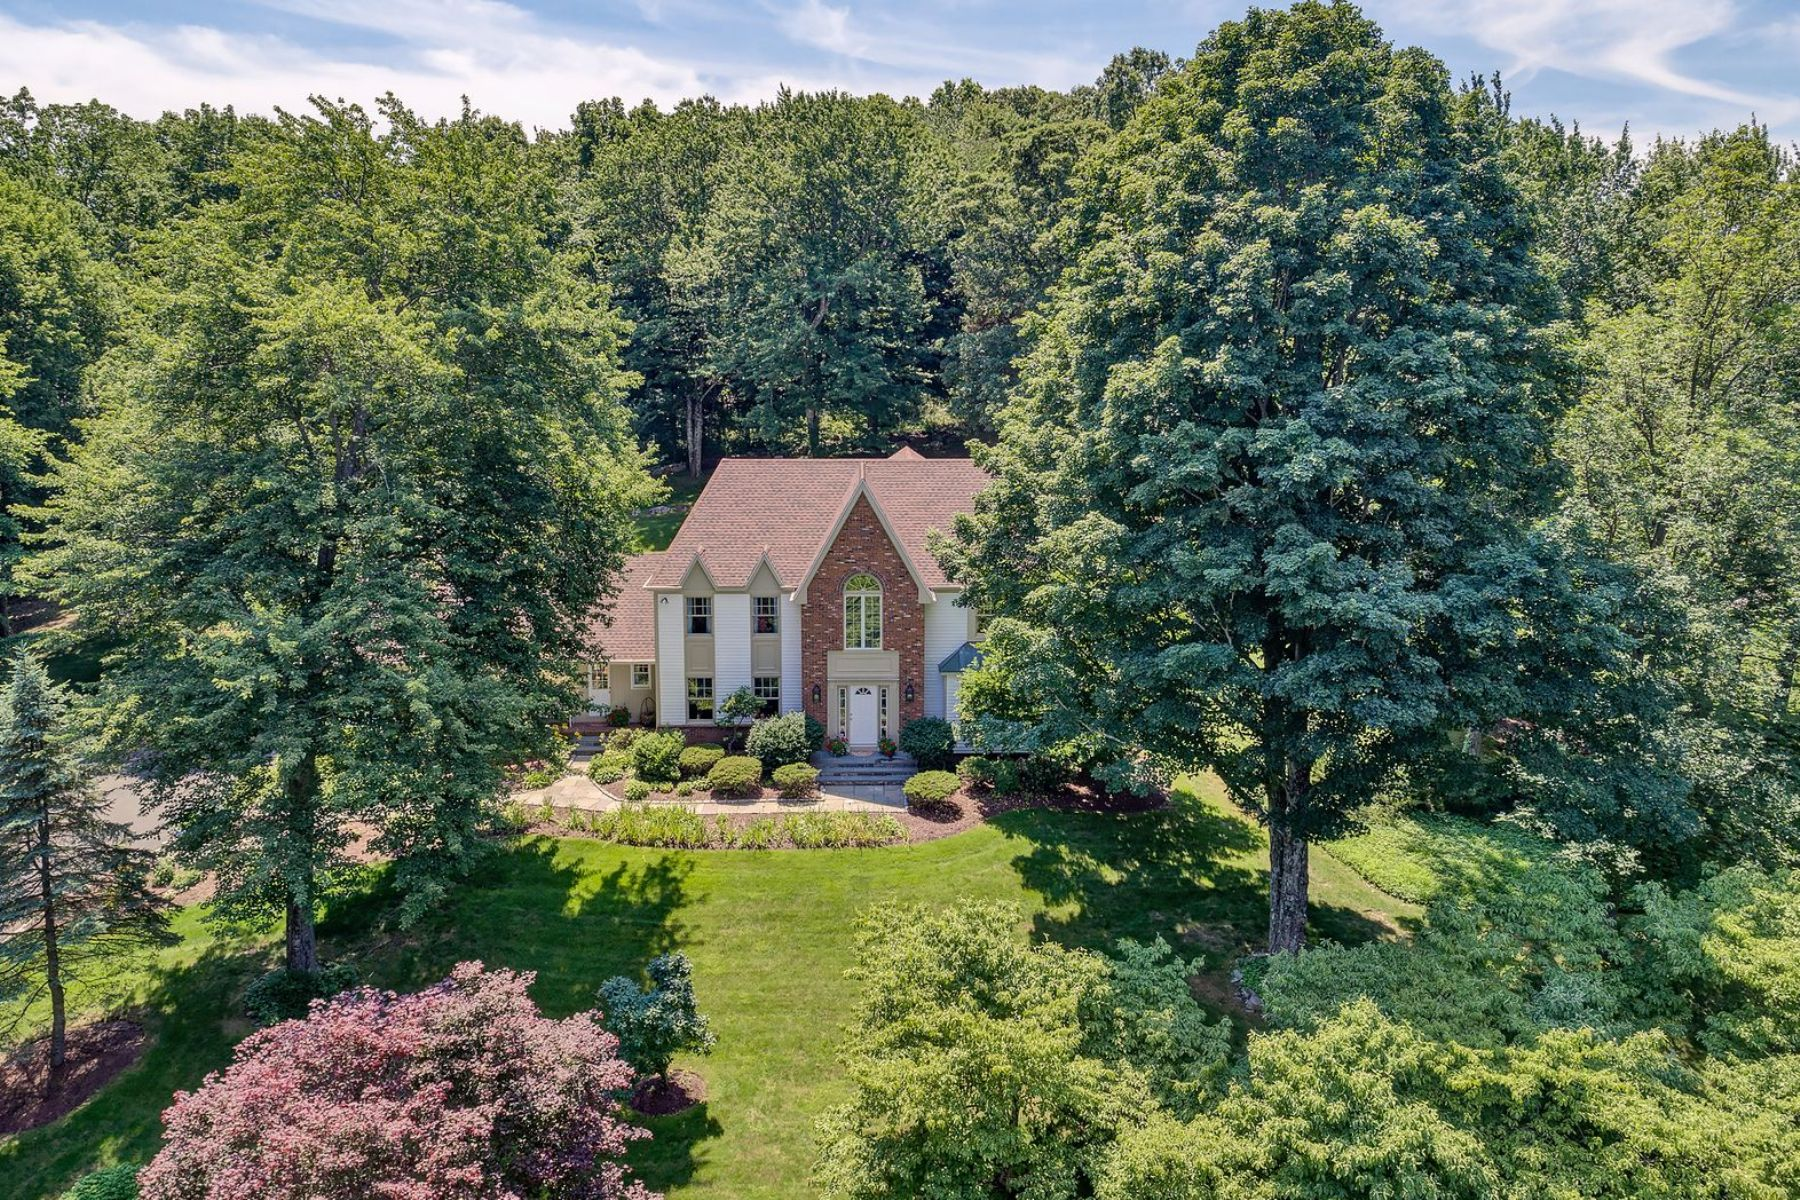 Moradia para Venda às Stunning High Setting 11 Crosswicks Ridge Road, Wilton, Connecticut, 06897 Estados Unidos